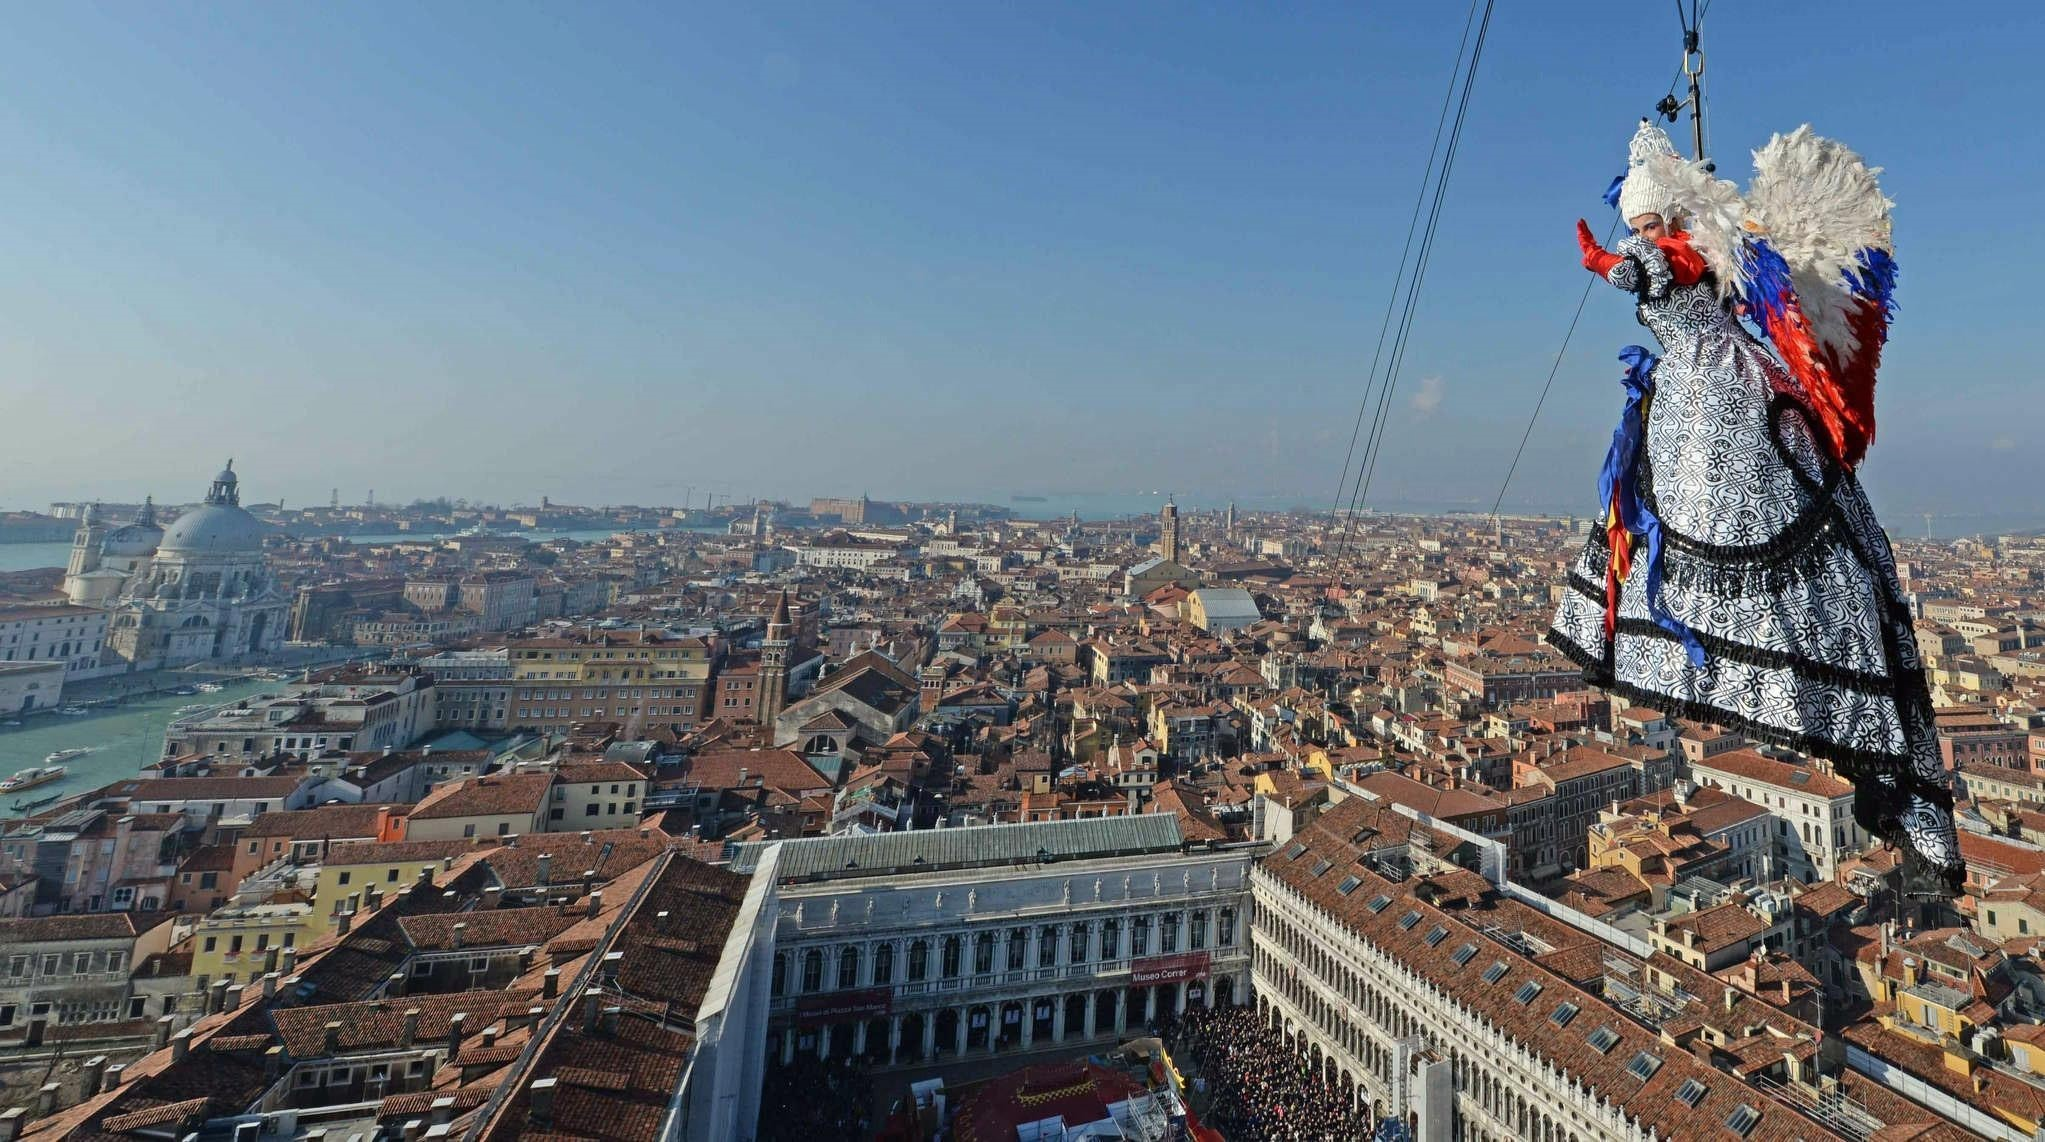 A handout photo shows Elisa Costantini, the winner of the 'Festa delle Marie' (Marie contest), descending on a zip line from the Campanile (Bell Tower) into the Piazza San Marco (EPA Photo)